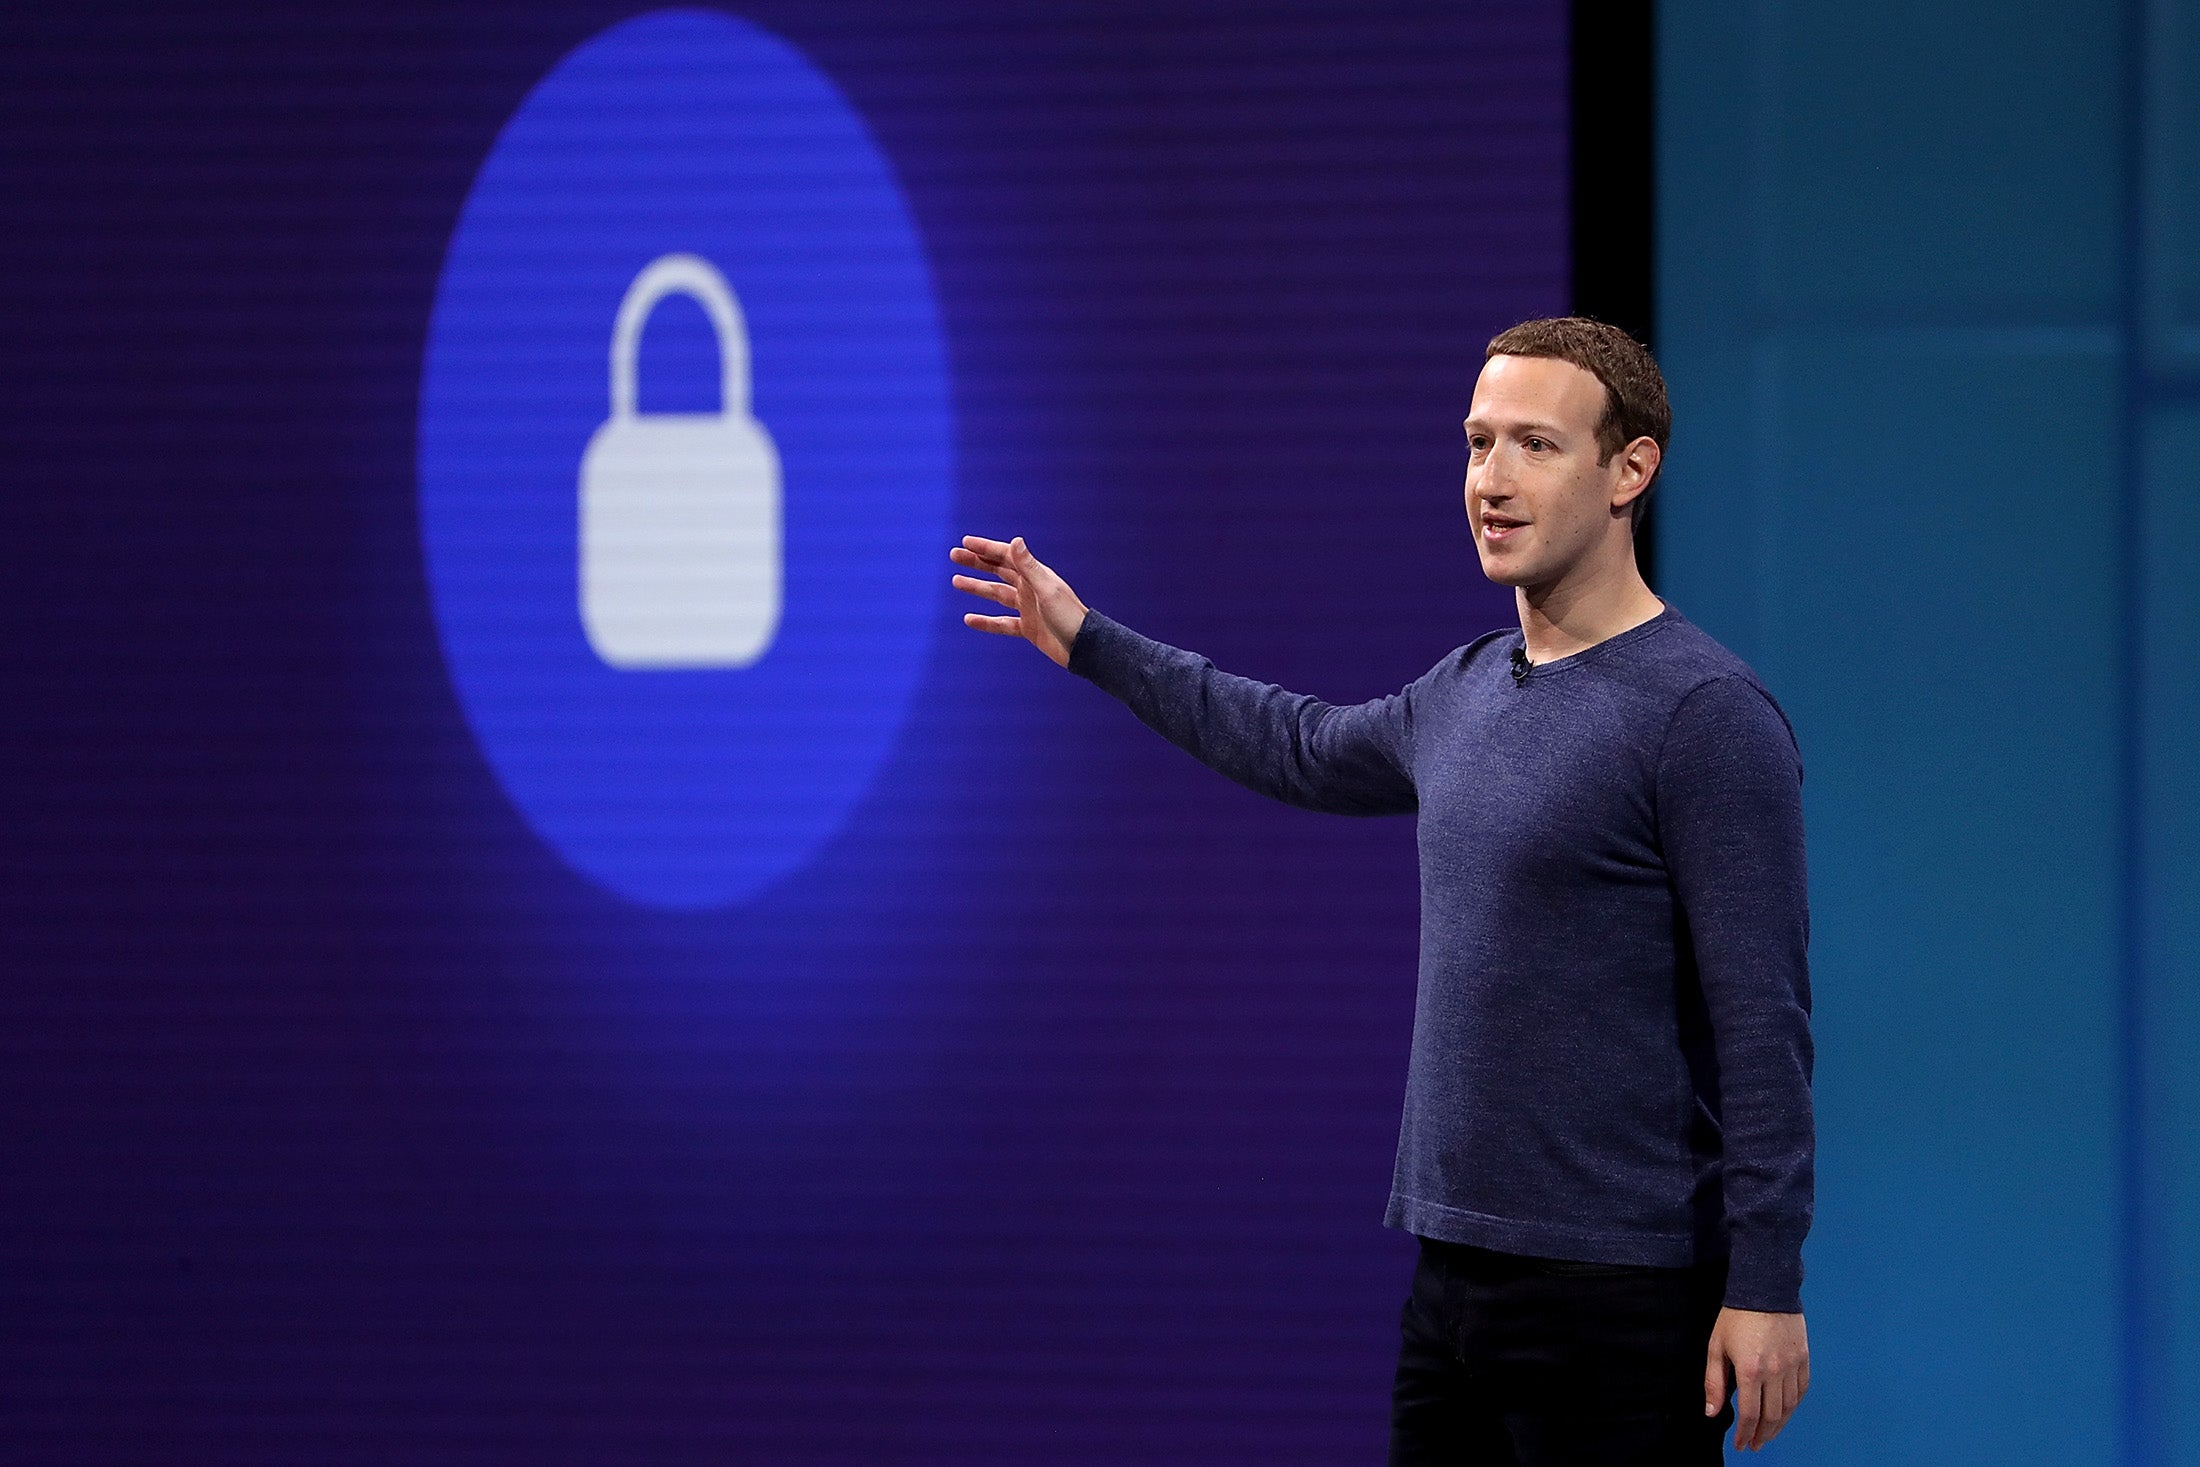 Mark Zuckerberg speaks during the F8 Facebook Developers conference on May 1 in San Jose, California.